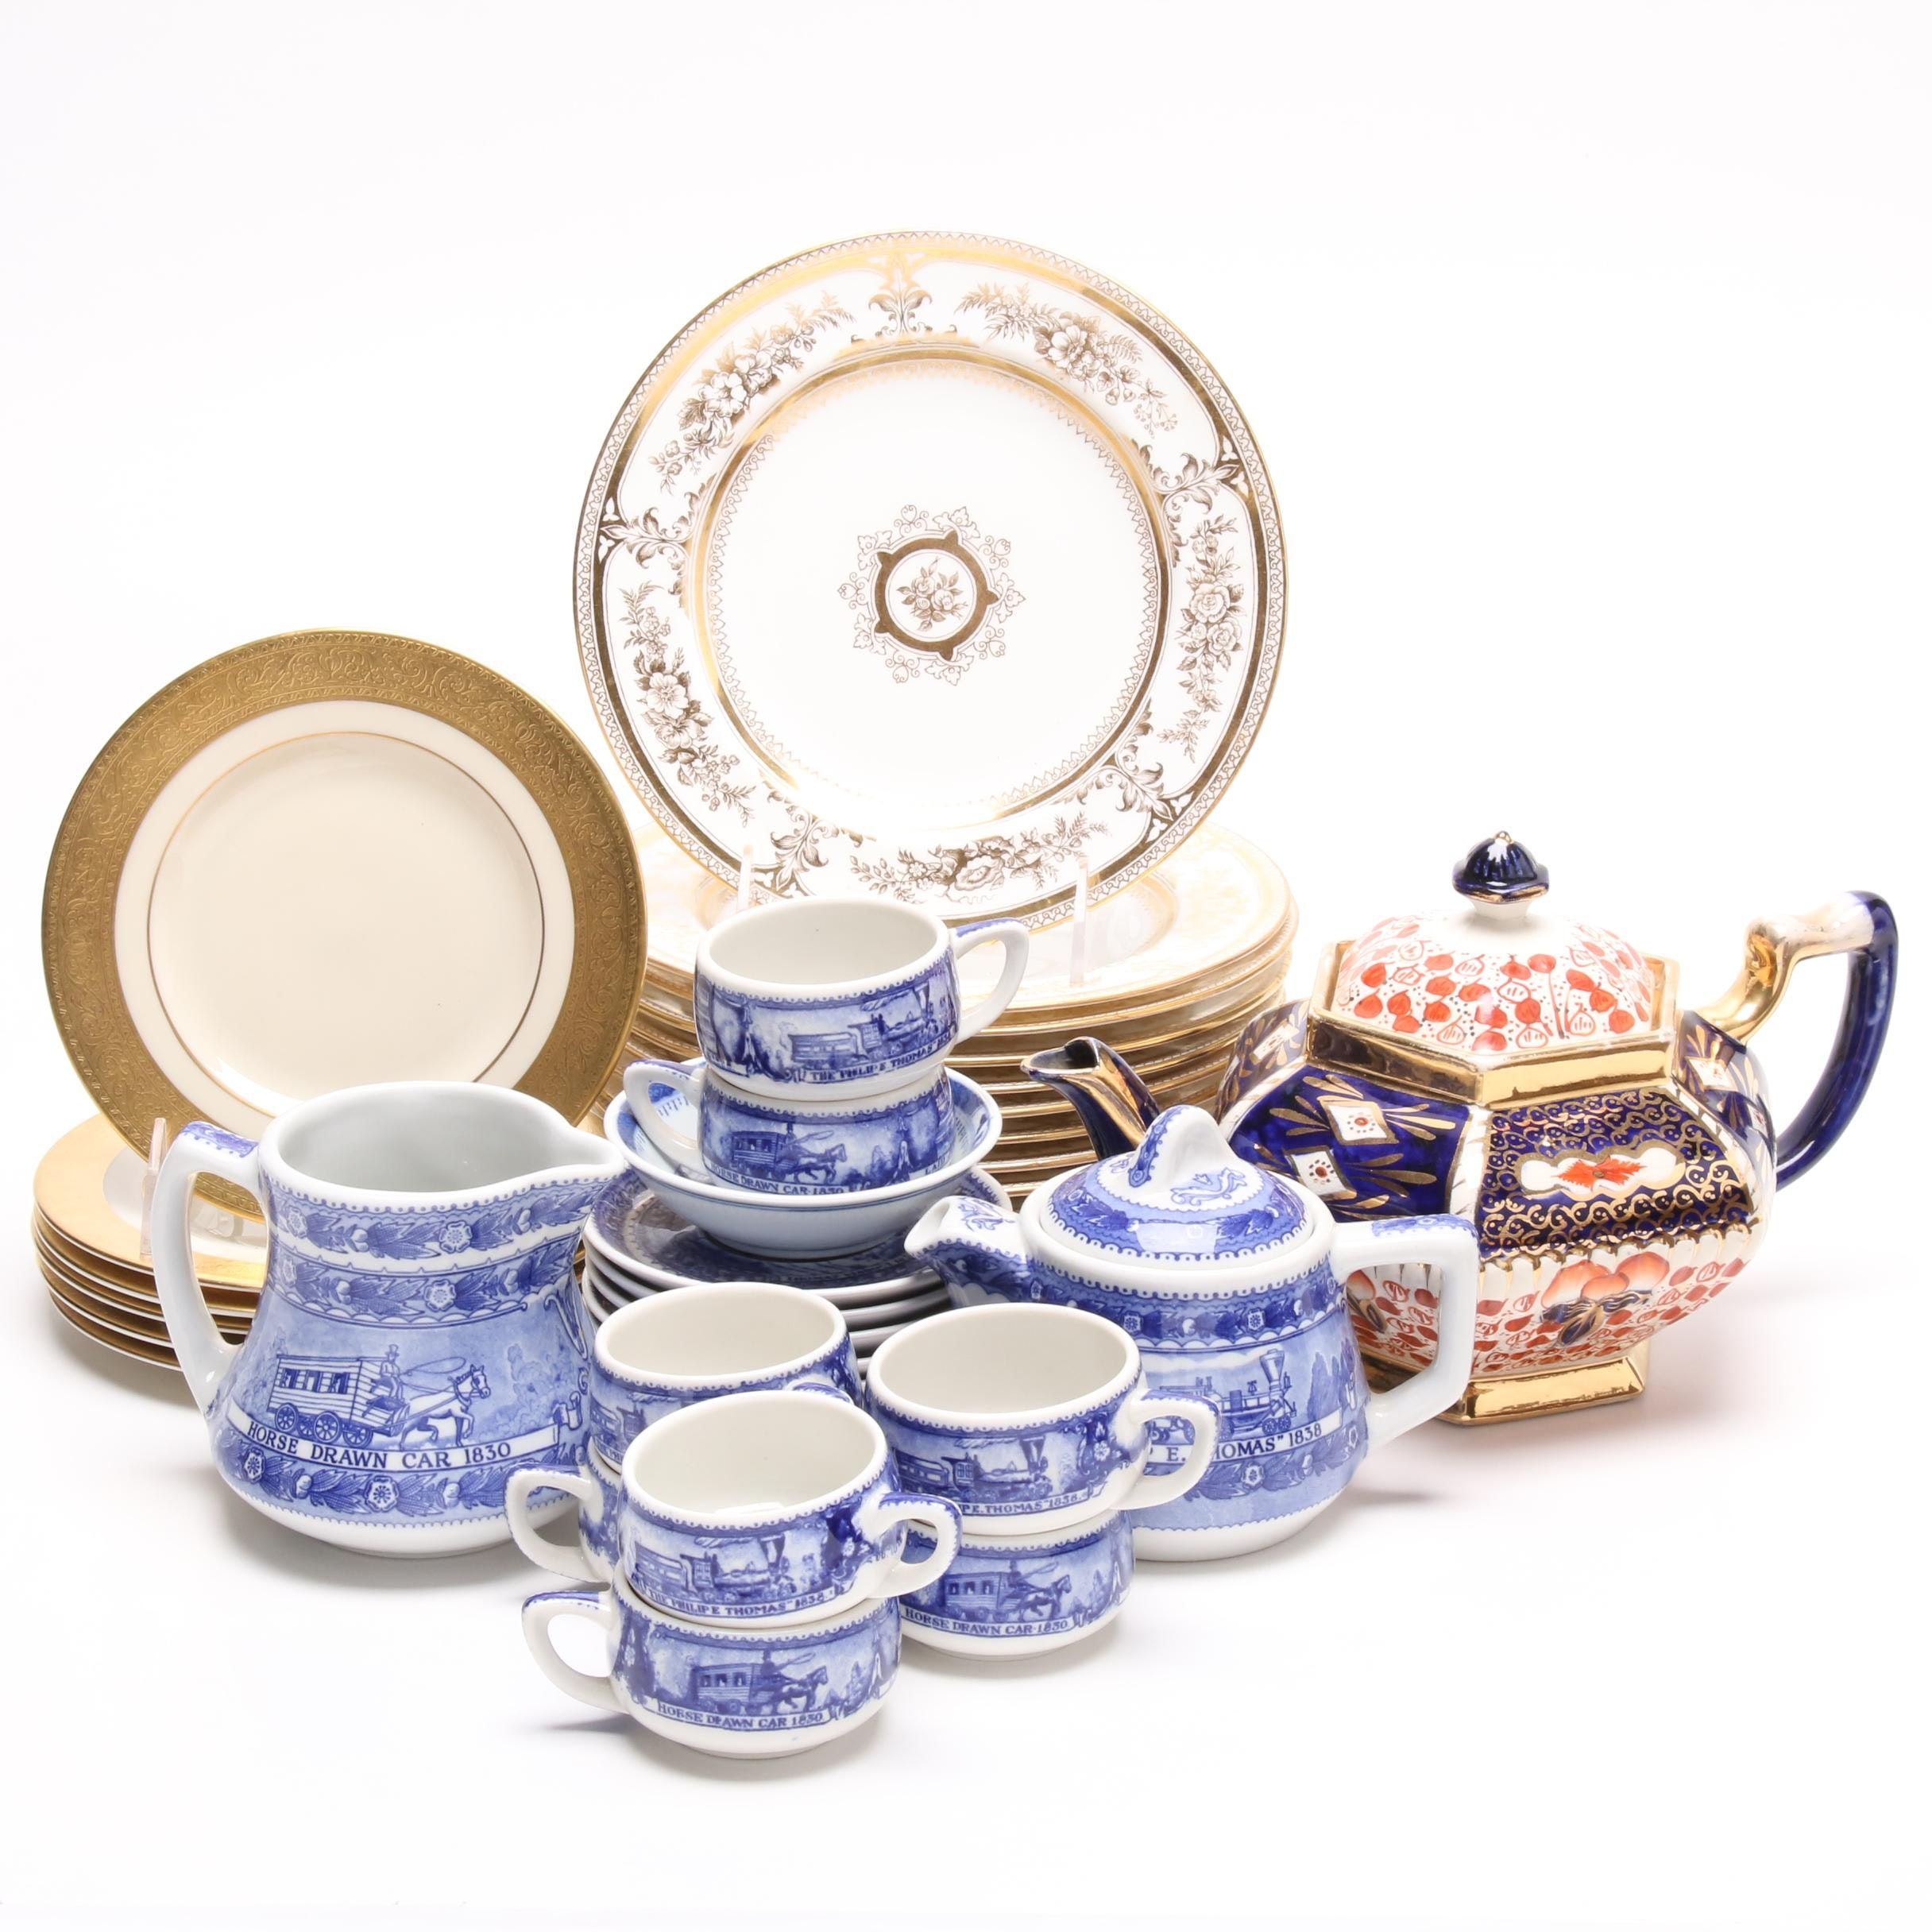 Lenox, Wedgwood, Scammell's Lamberton and Shenango Railroad Tableware